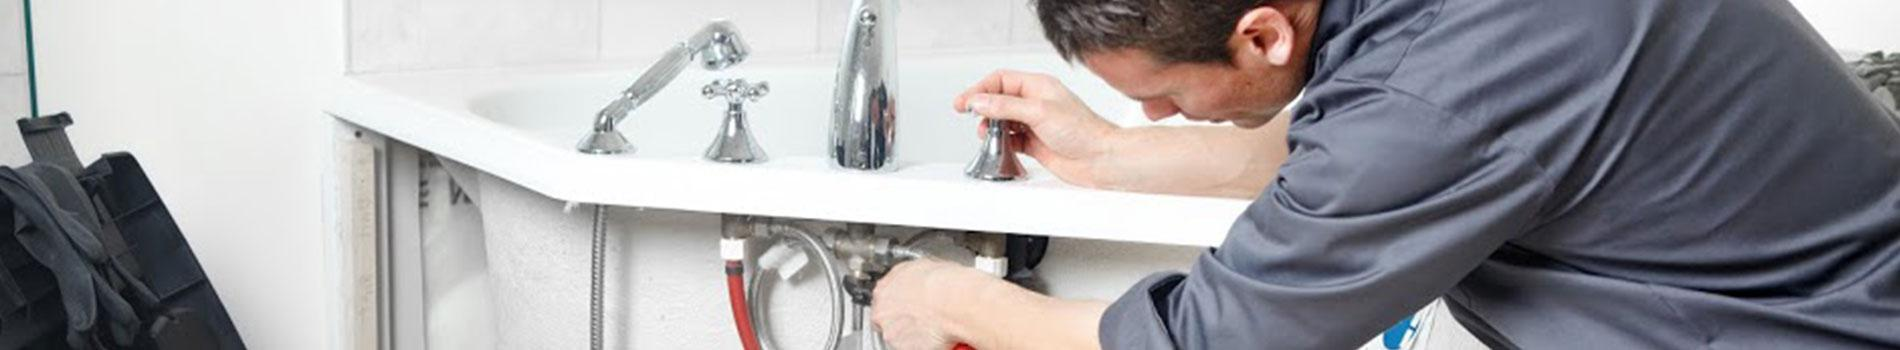 Residential Plumbing Services in San Antonio, TX